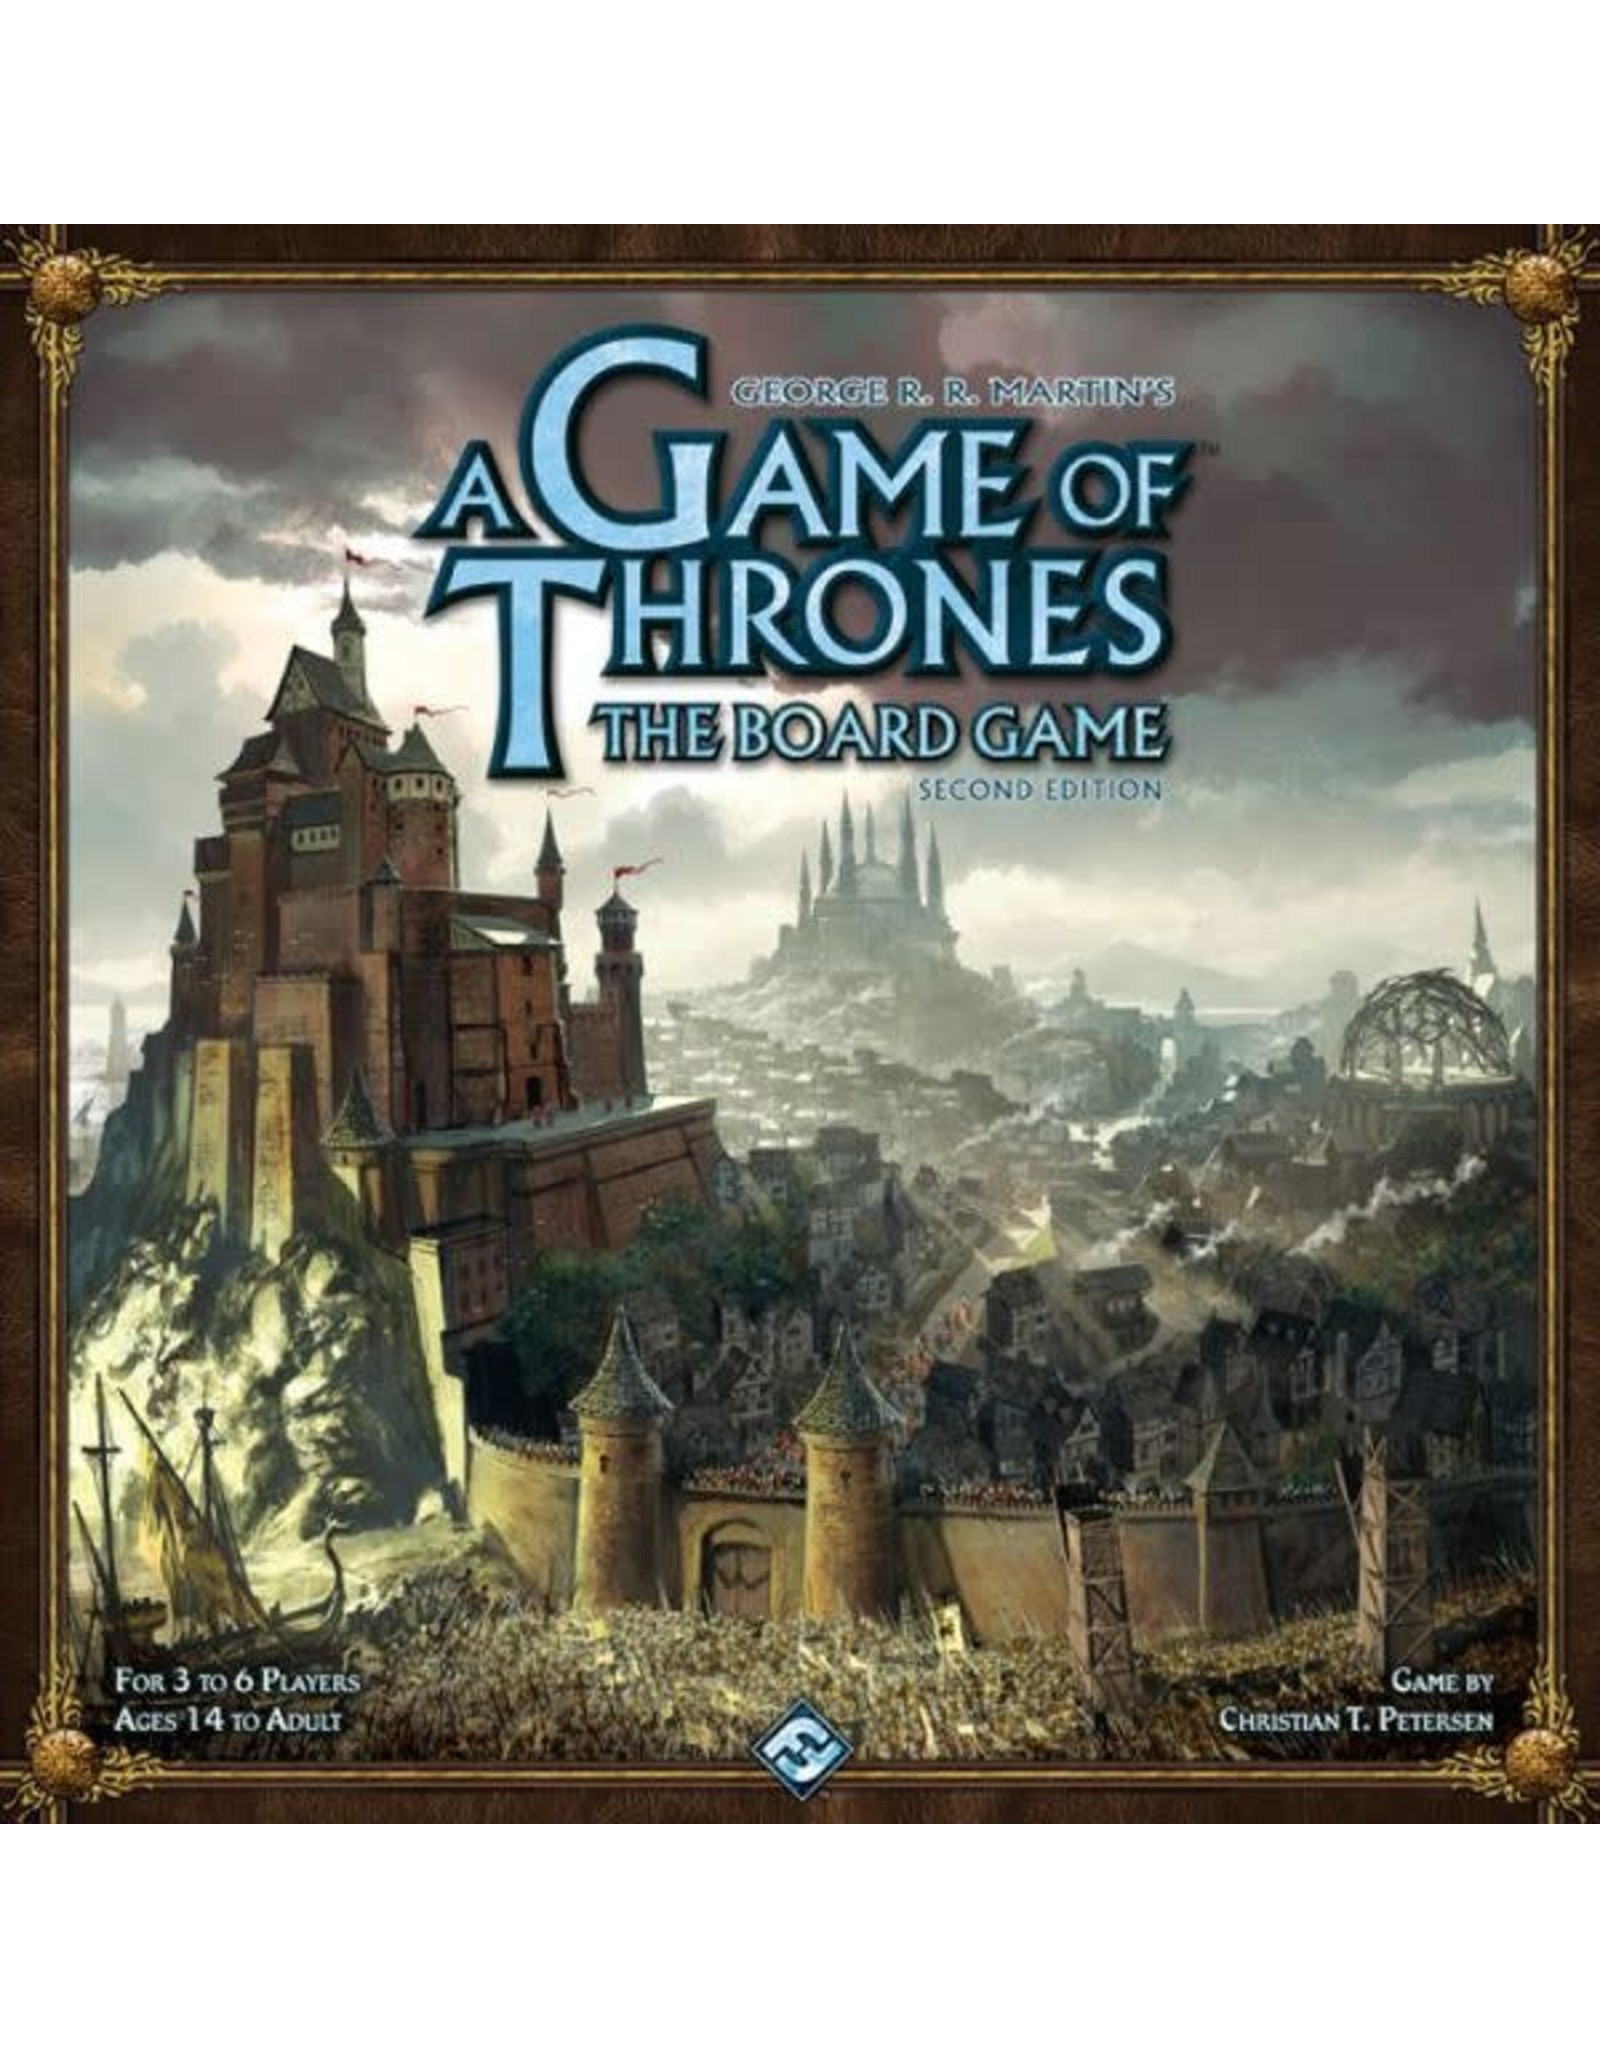 Fantasy Flight A GAME OF THRONES: THE BOARD GAME (SECOND EDITION) - A DANCE WITH DRAGONS